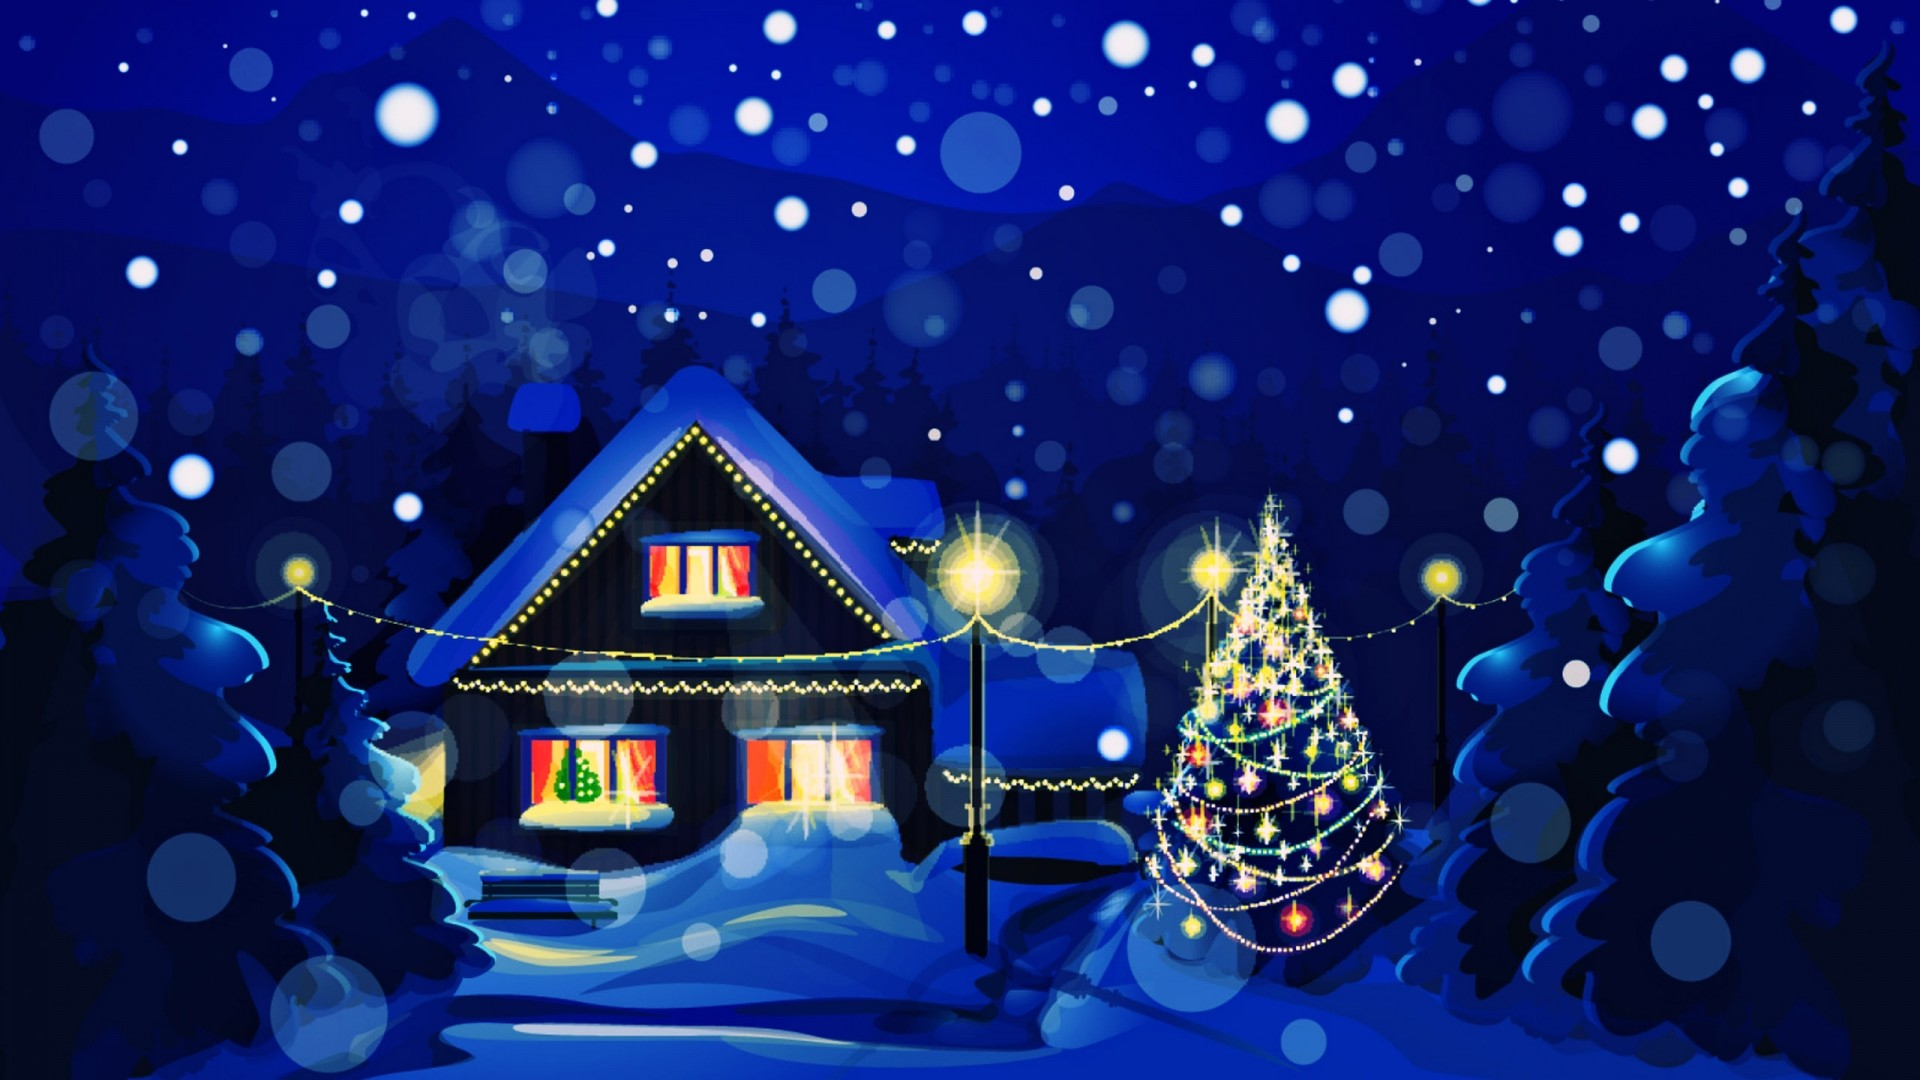 1920x1080 Hd Christmas Wallpapers 1080p | Free Wallpapers Pictures